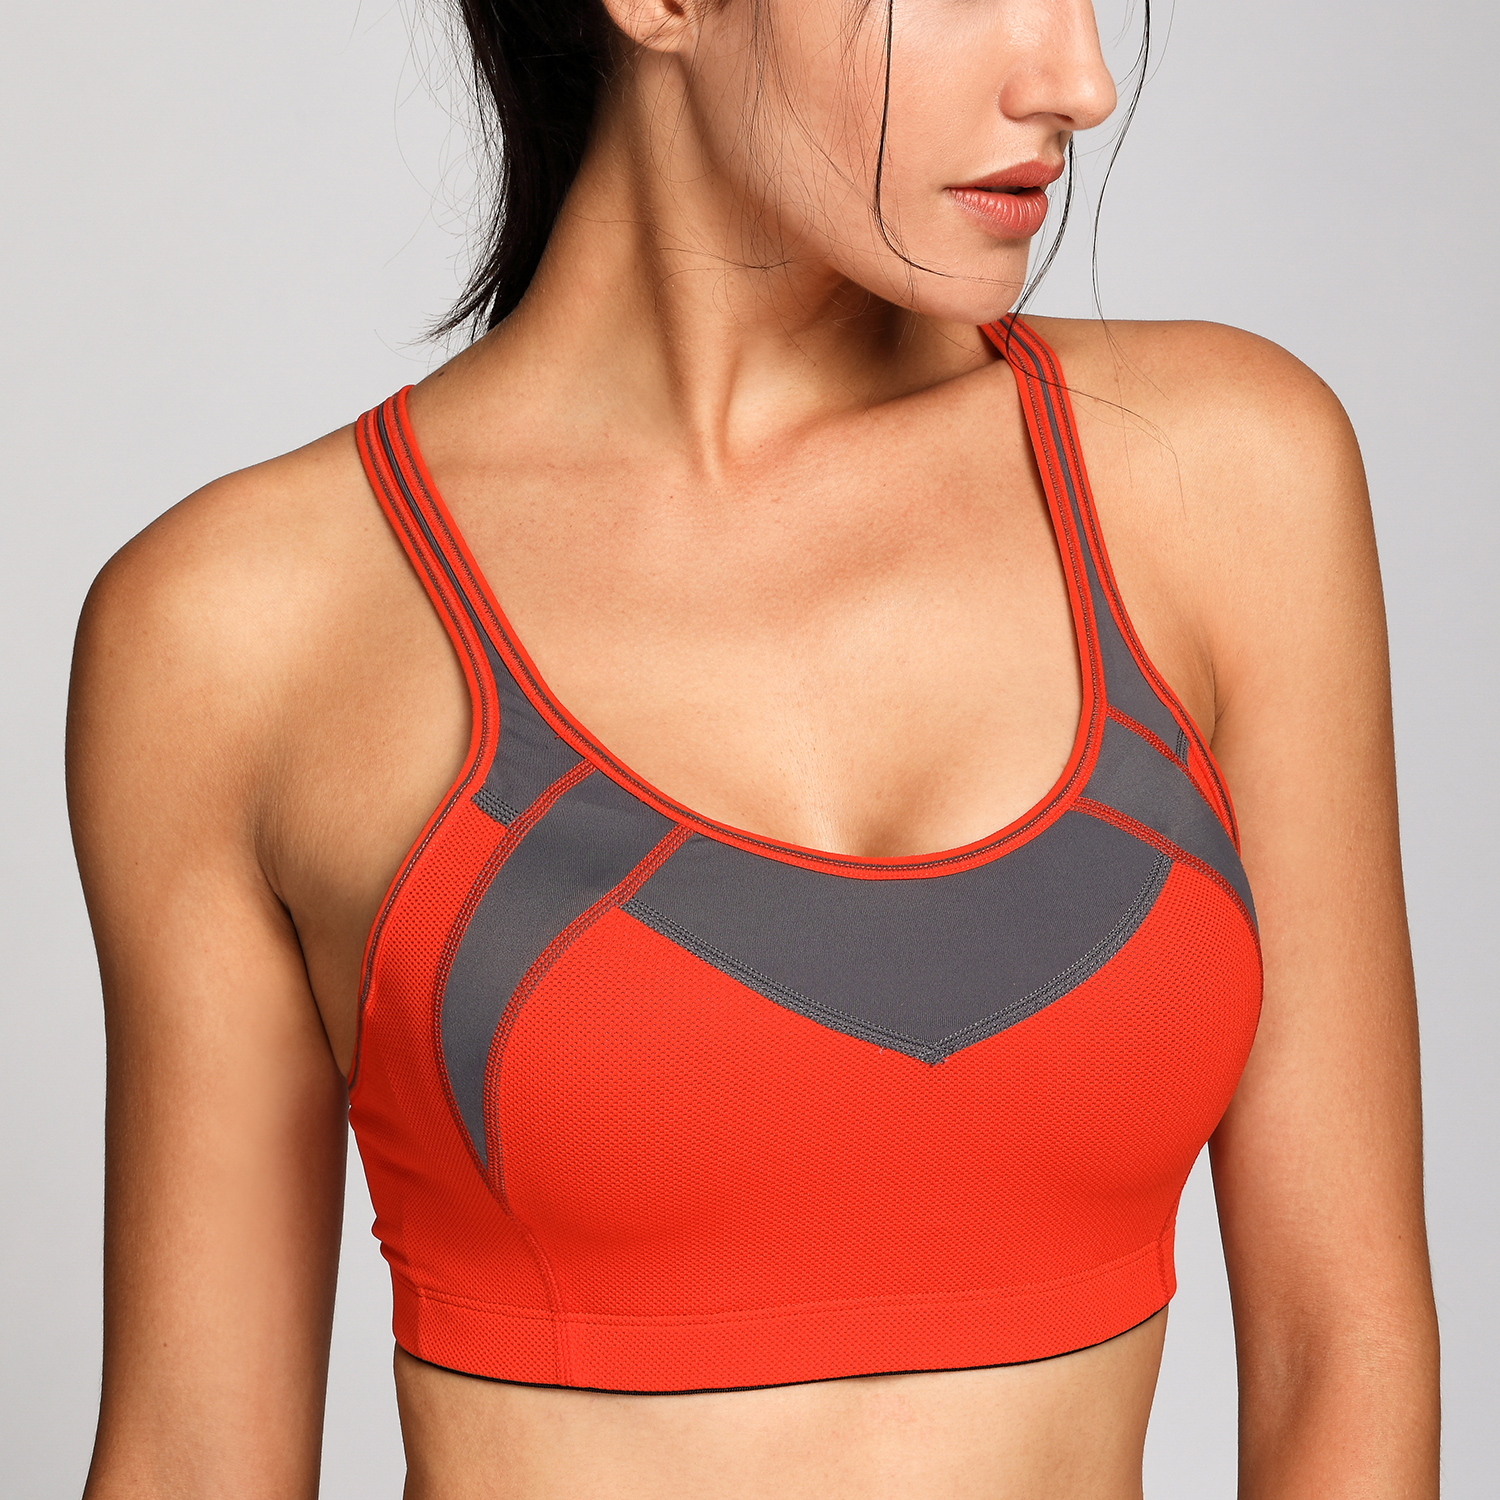 Women-039-s-High-Impact-Gym-Active-Sports-Bra-With-Mesh-Wireless-Padded-Cup-X-back thumbnail 13